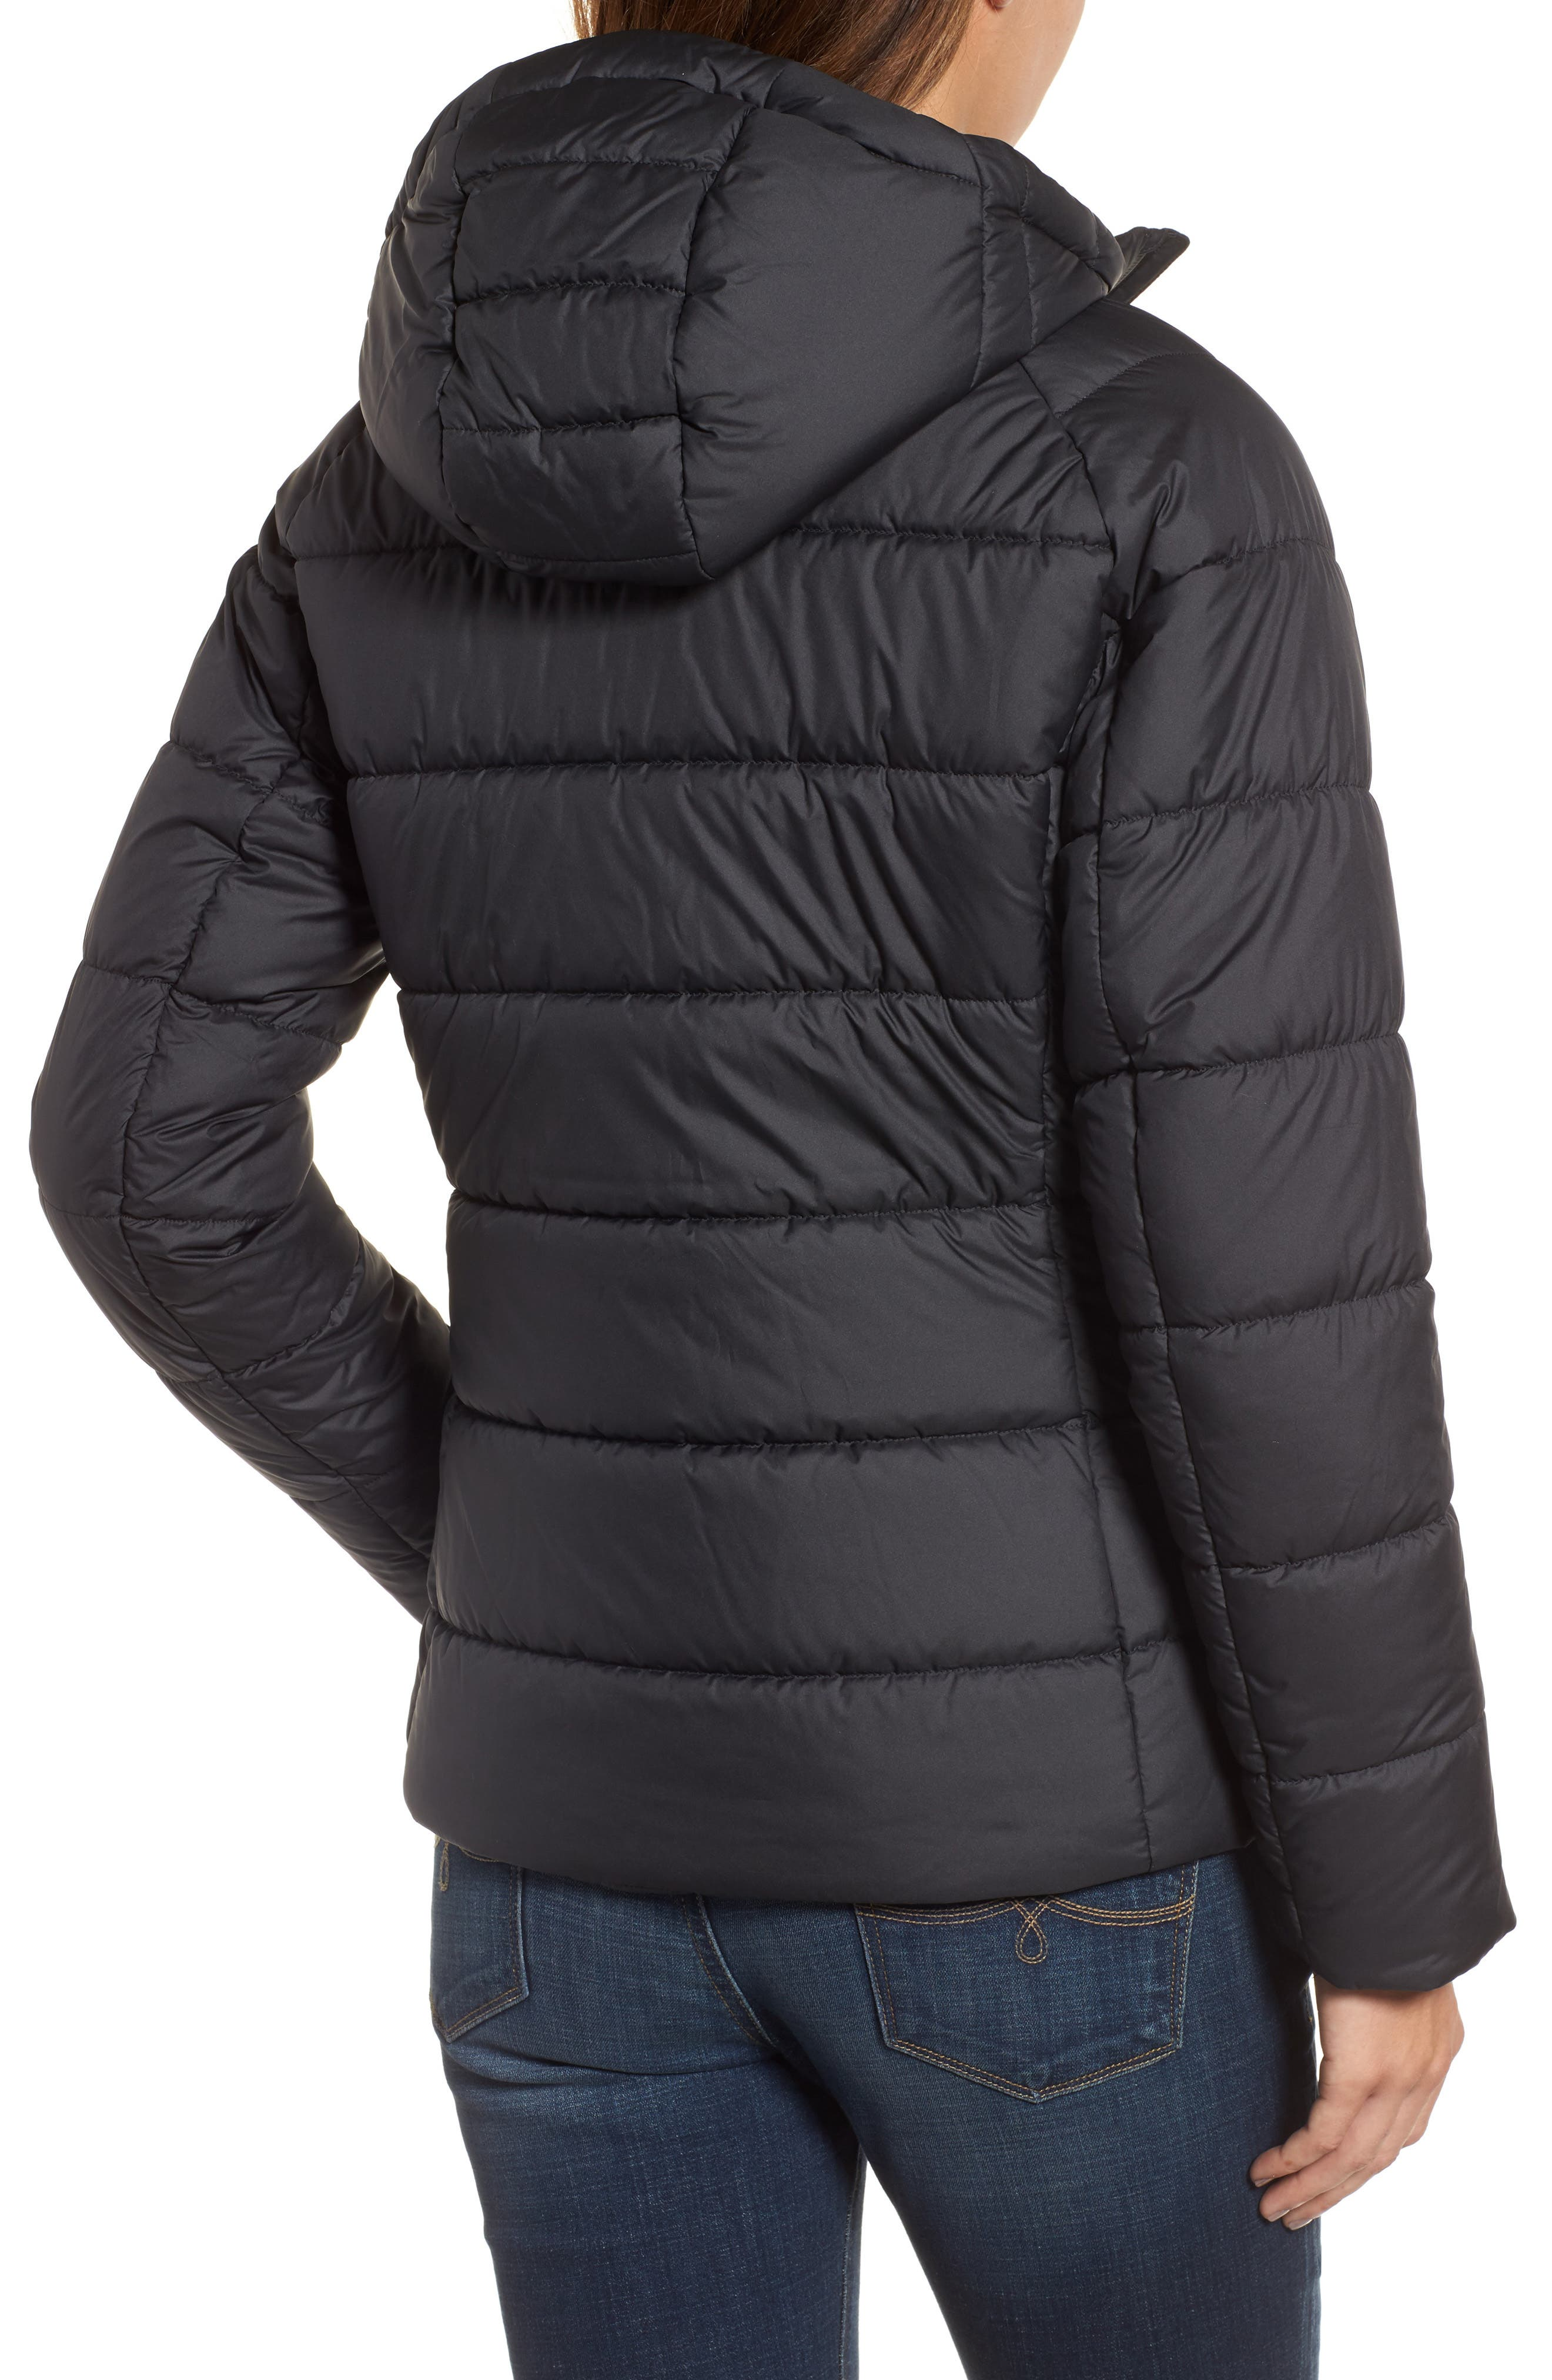 Transitional HyperDAS<sup>™</sup> Insulated Jacket,                             Alternate thumbnail 2, color,                             001